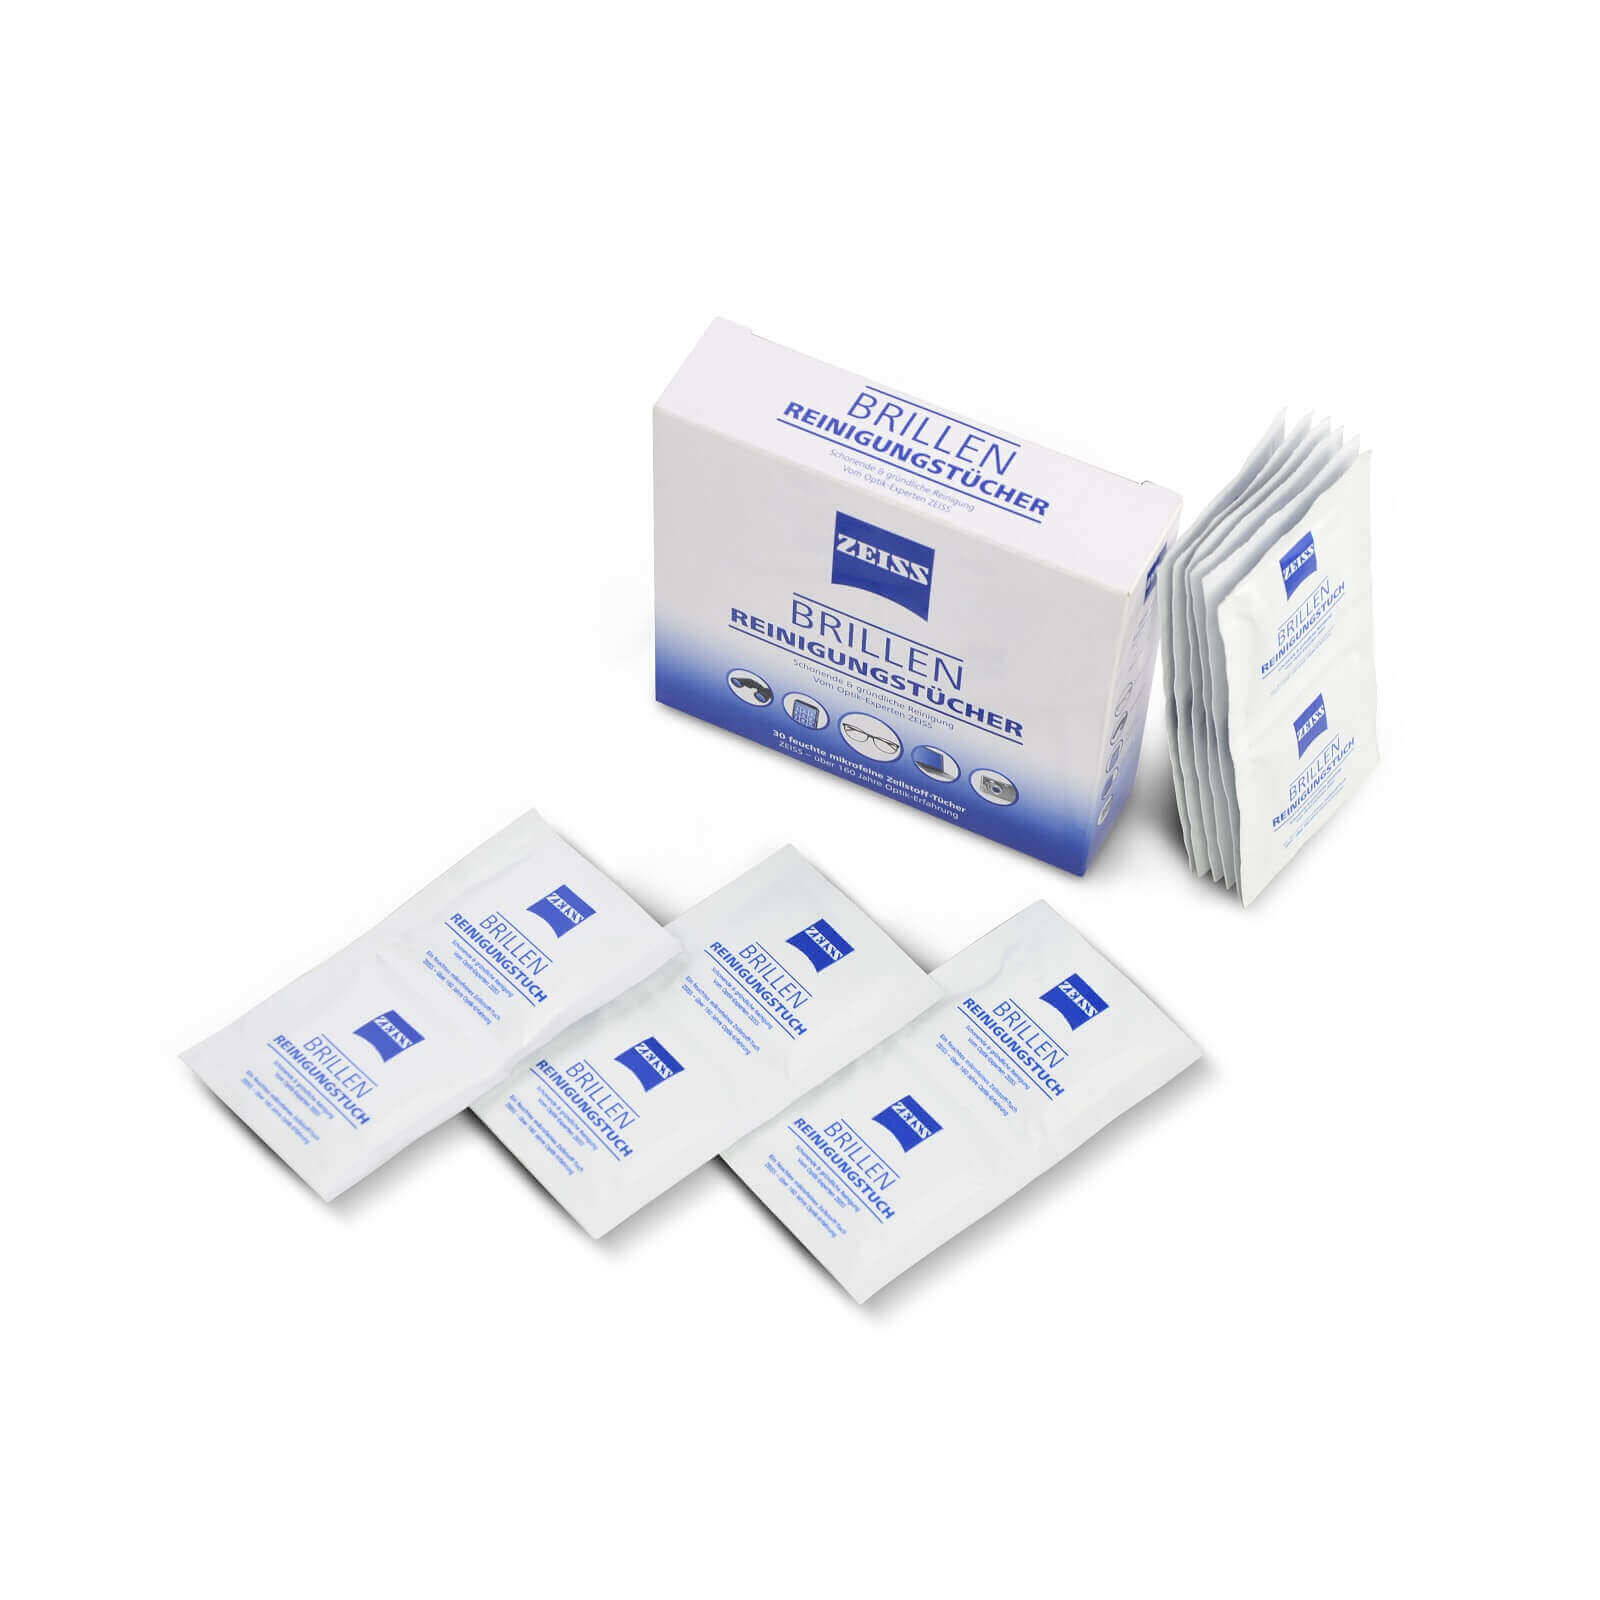 ZEISS cleaning wipes set